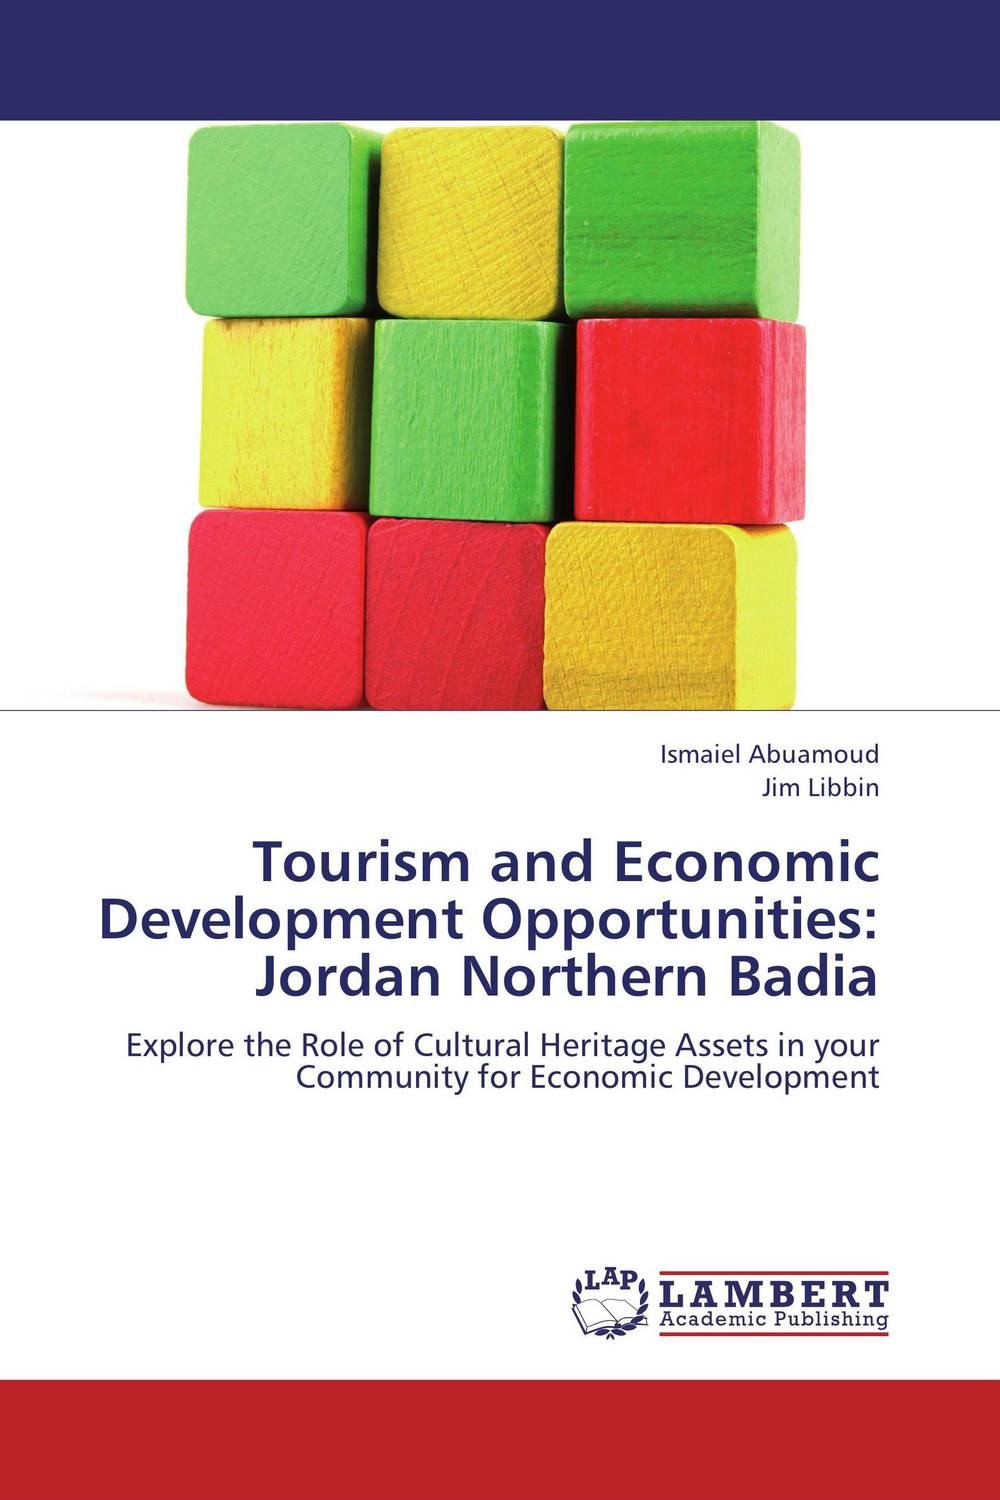 Tourism and Economic Development Opportunities: Jordan Northern Badia cuban mojo marinade by badia 4 galon pack